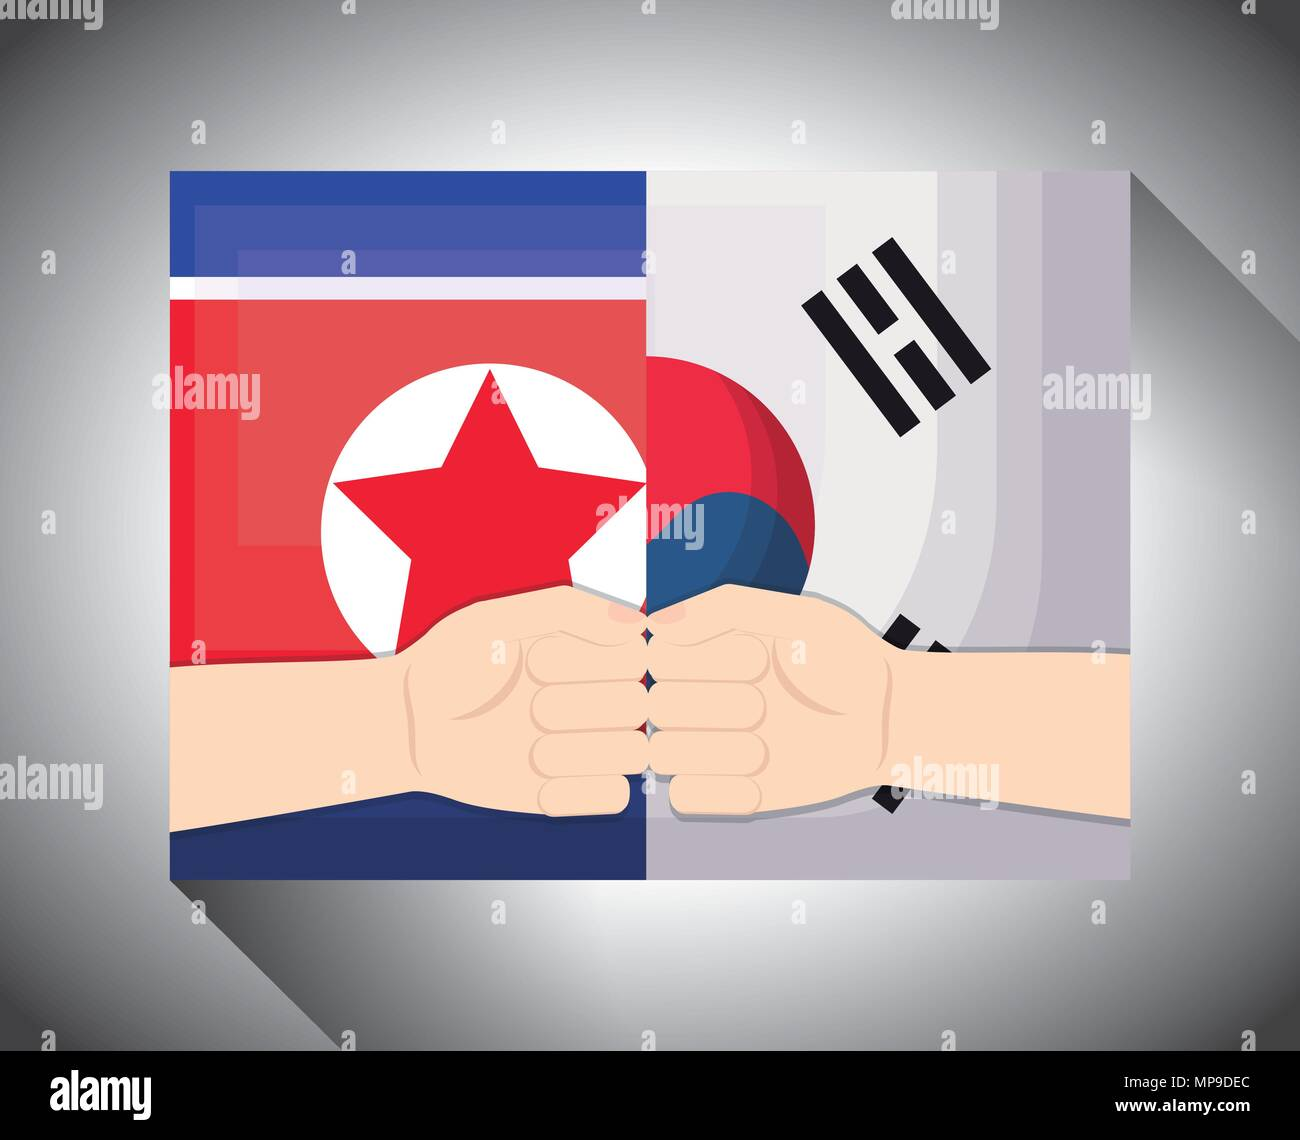 peace negotiation design with north korea and south korea flags and hands over gray background, vector illustration - Stock Image